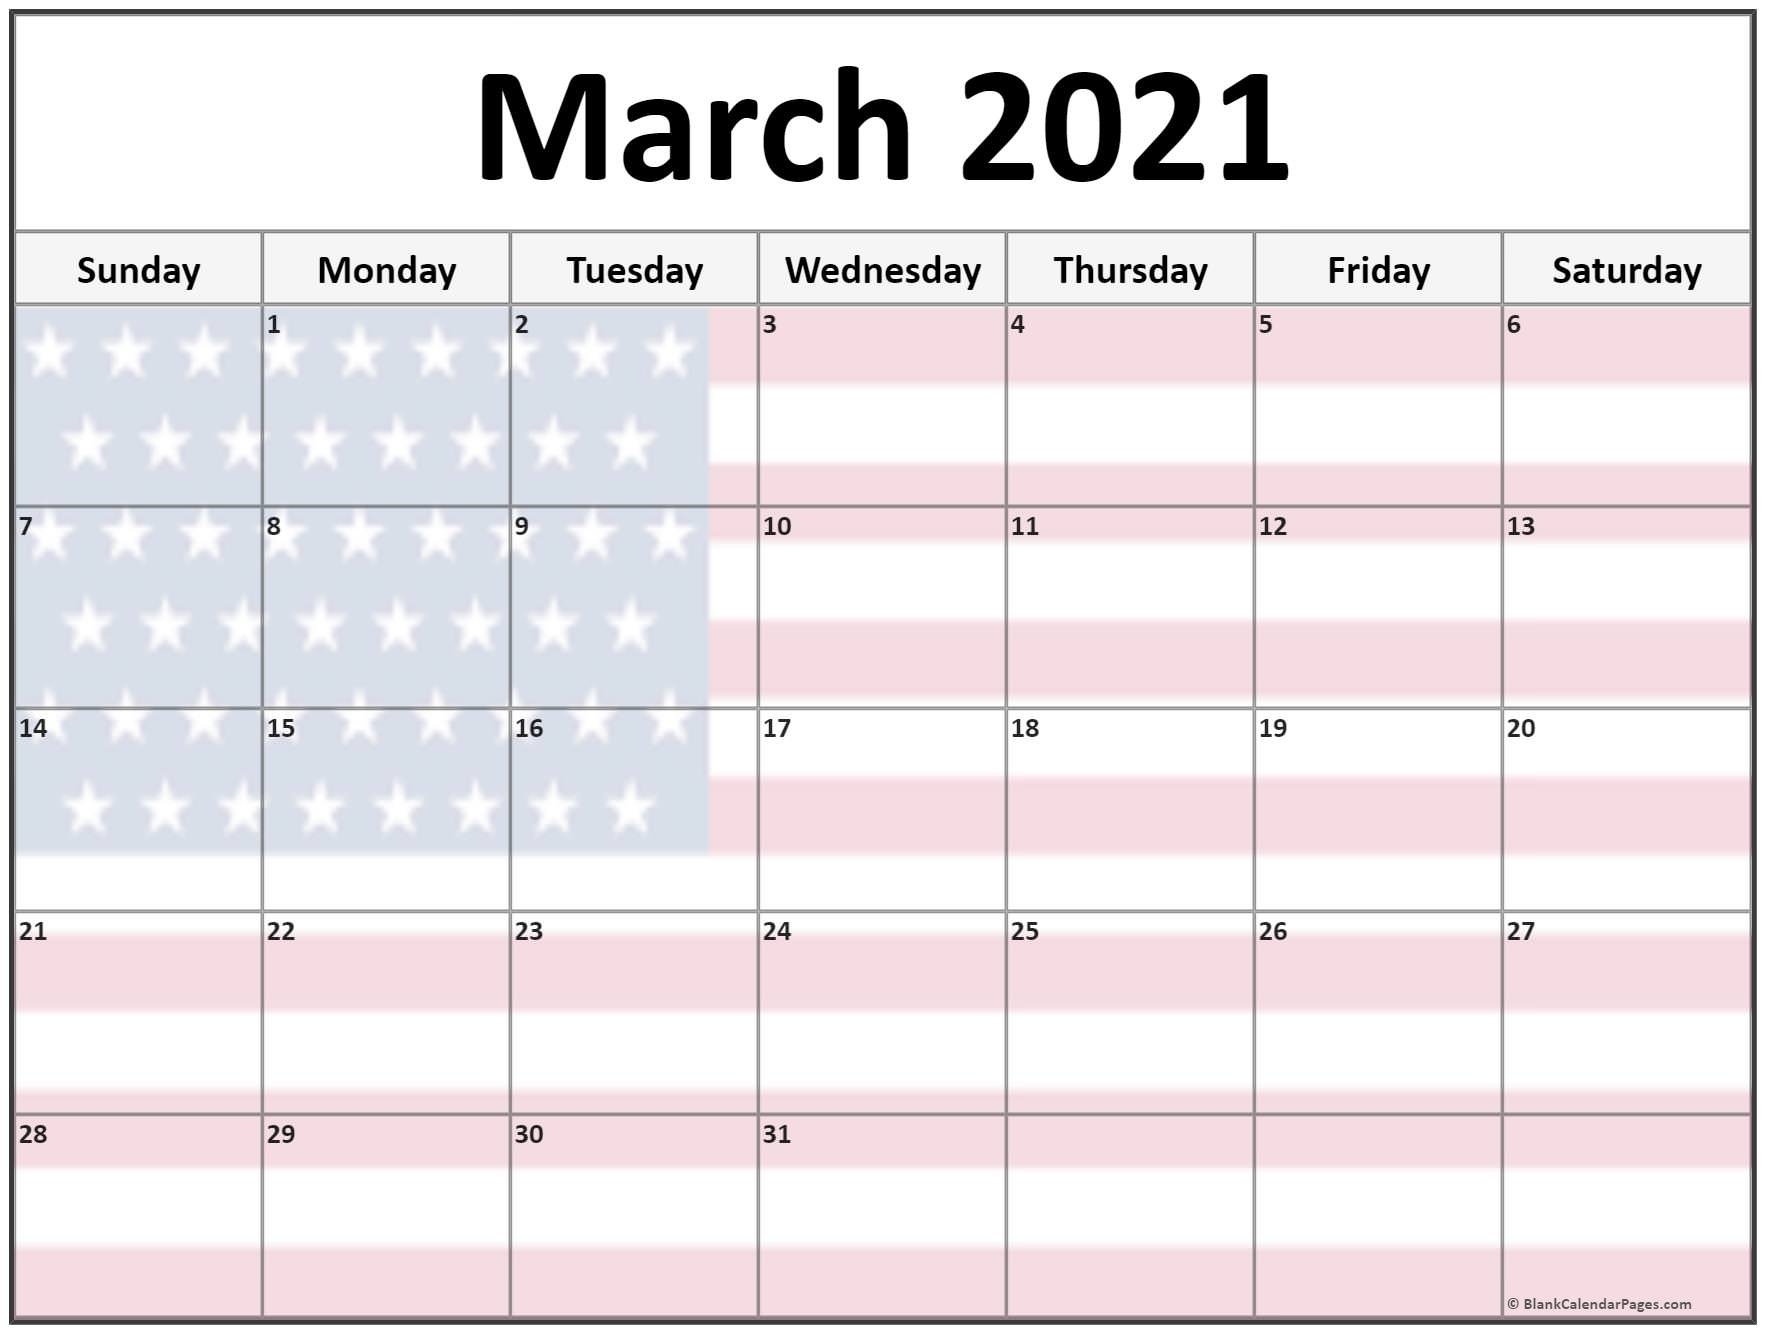 Collection Of March 2021 Photo Calendars With Image Filters.